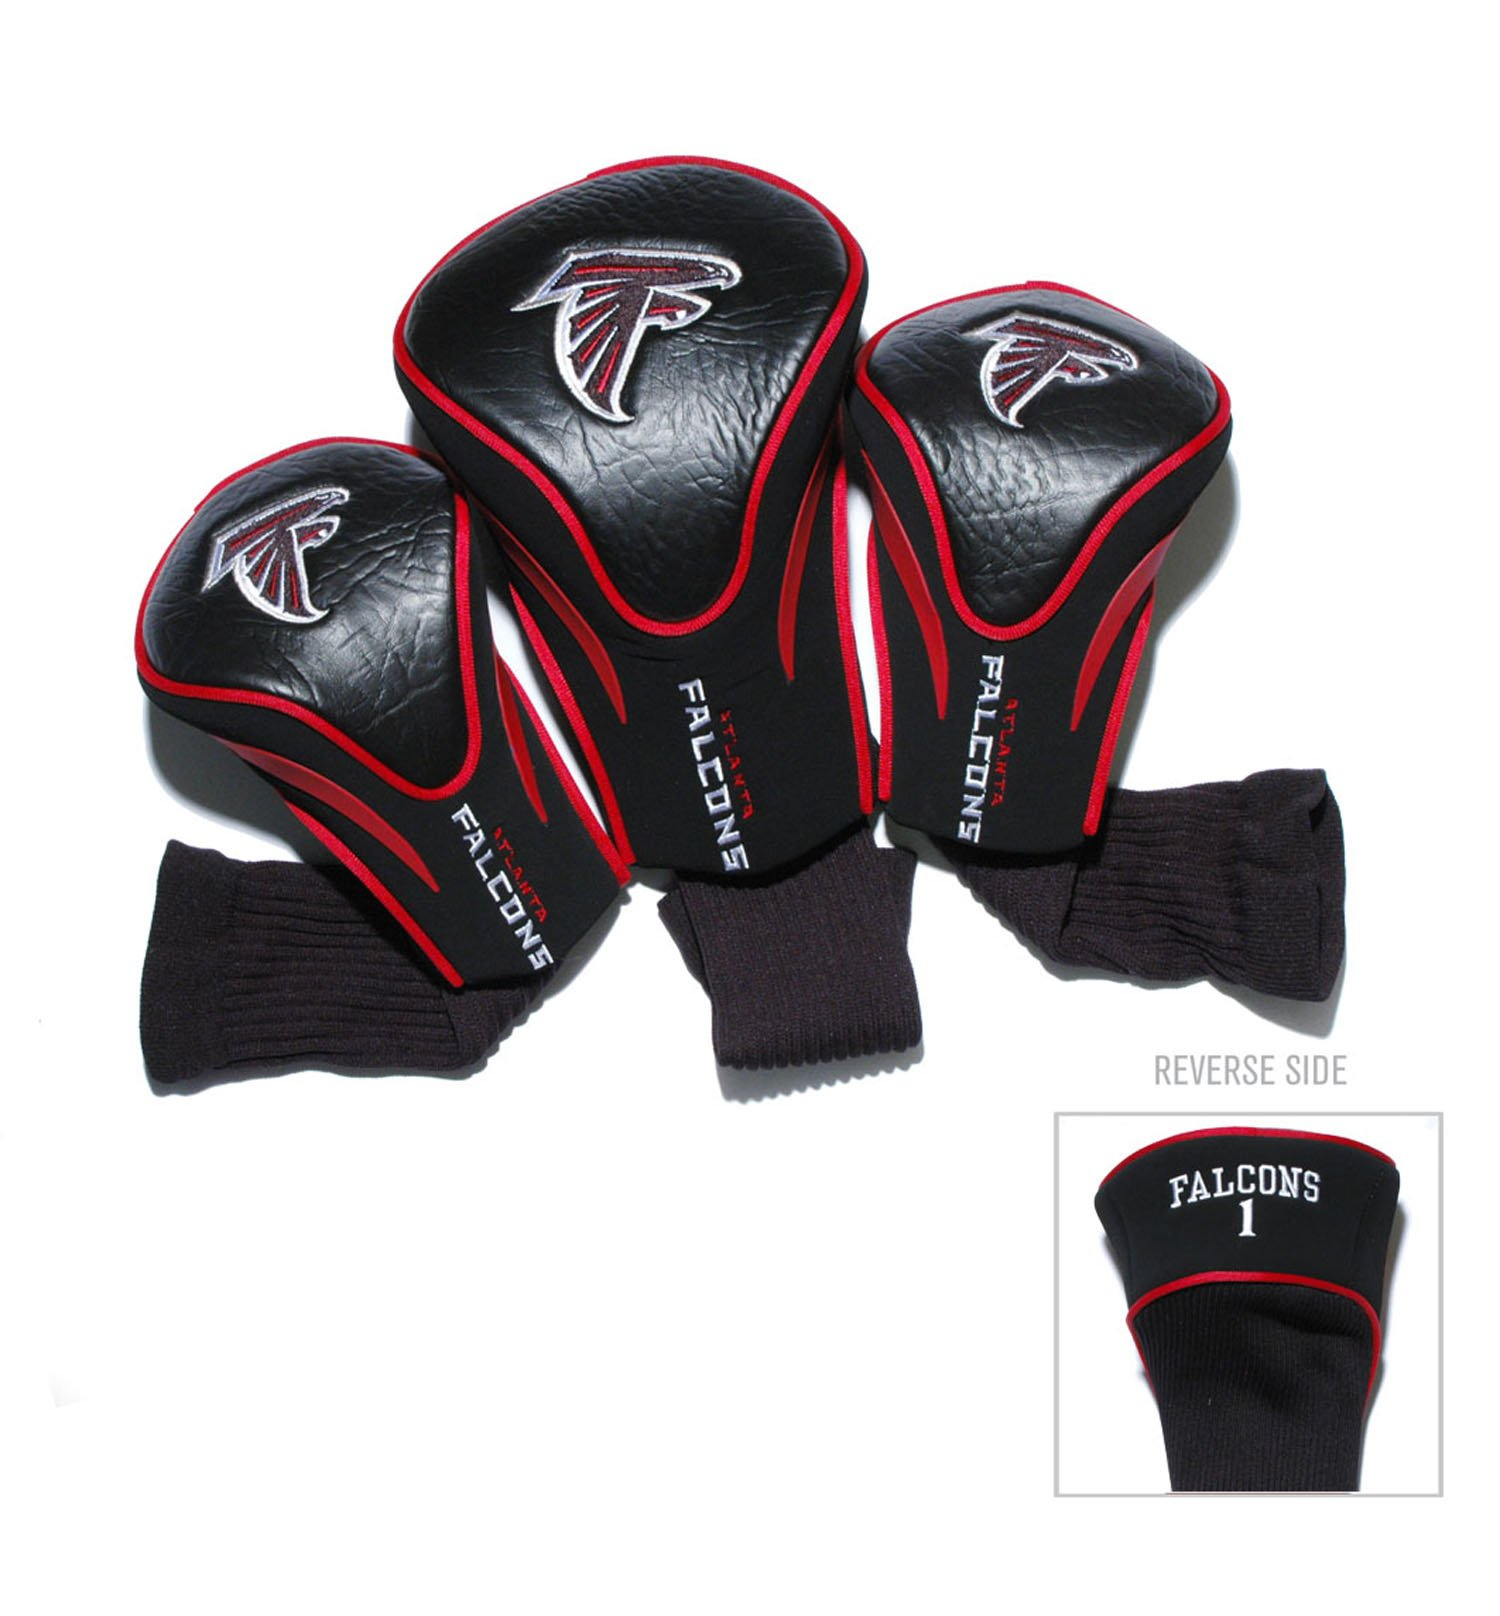 Team Golf NFL Atlanta Falcons Contour Golf Club Headcovers (3 Count), Numbered 1, 3, & X, Fits Oversized Drivers, Utility, Rescue & Fairway Clubs, Velour lined for Extra Club Protection